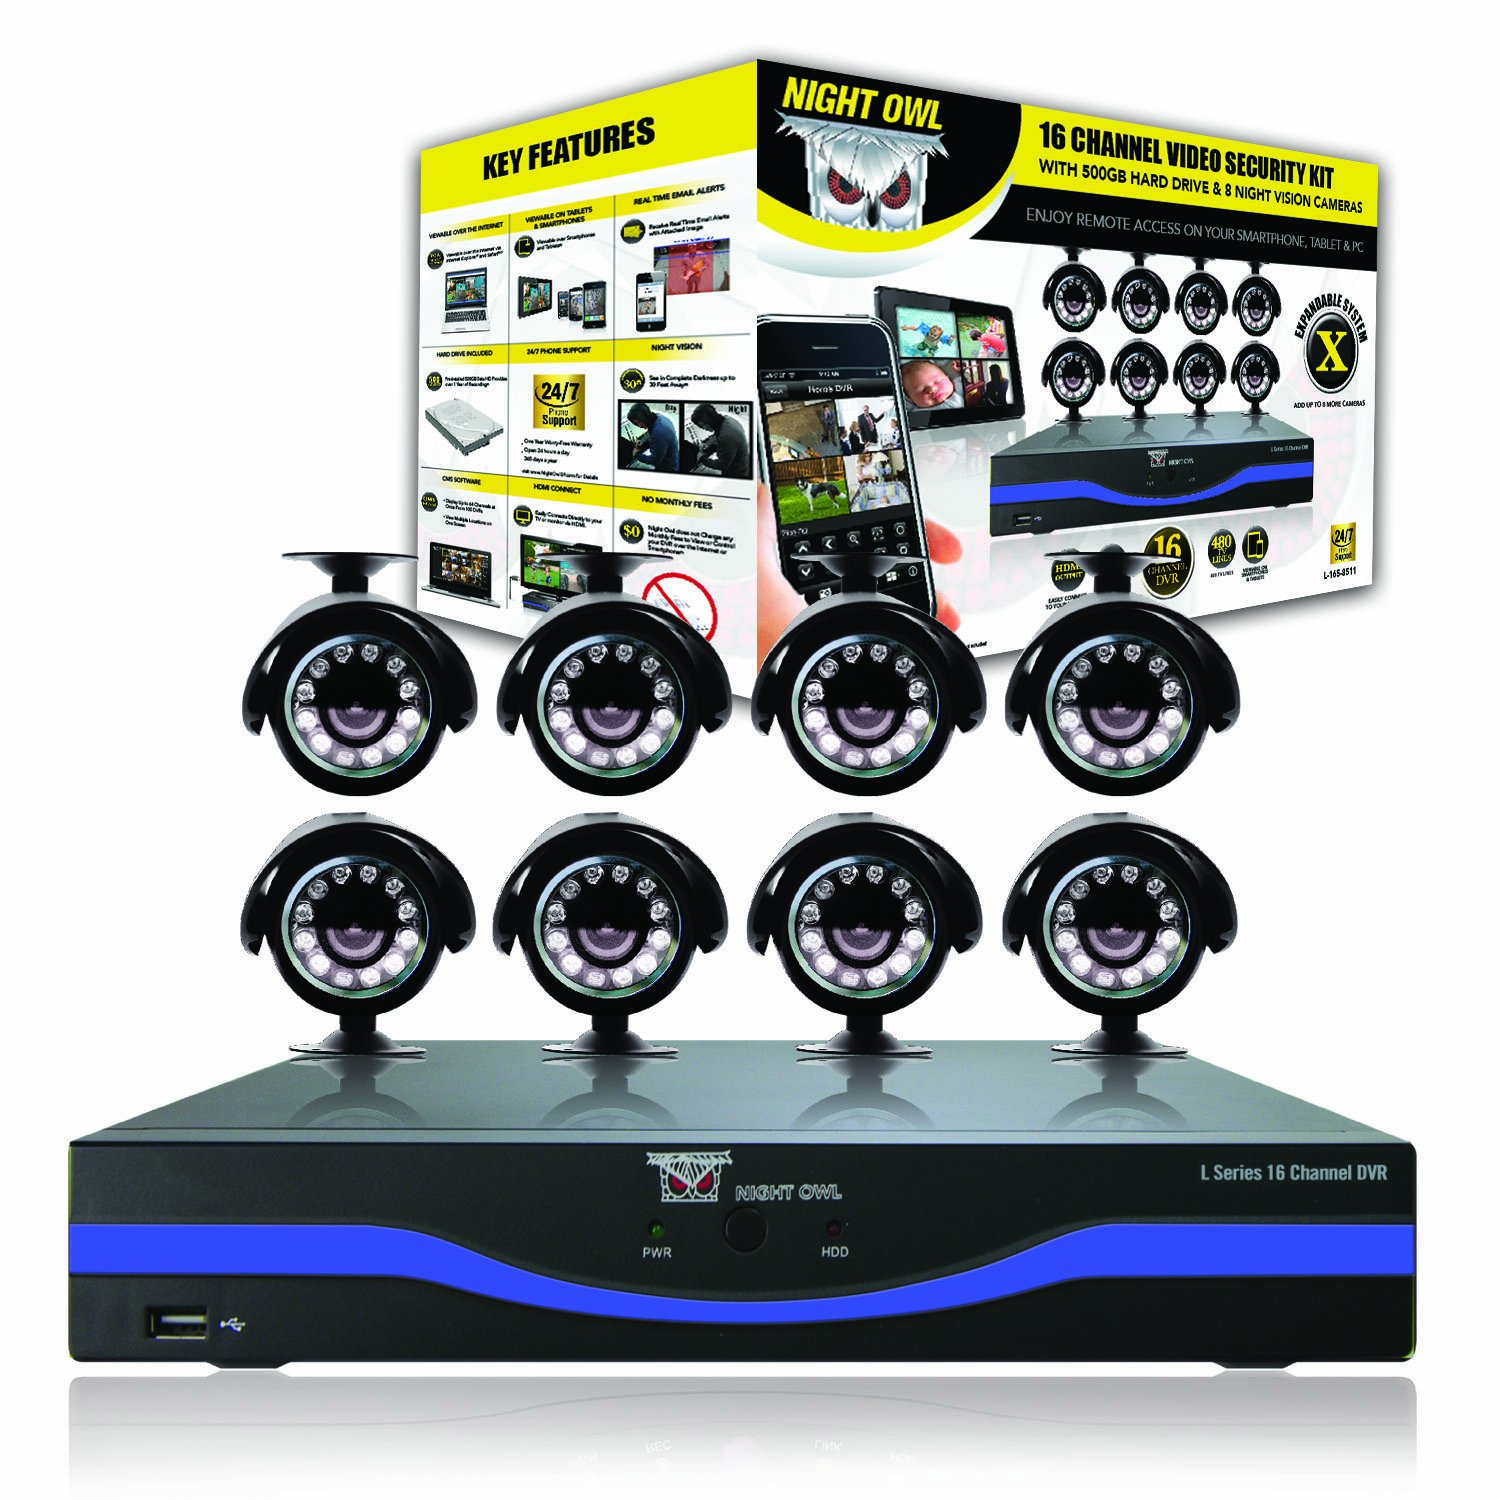 Amazon.com : Night Owl Security L-165-8511 16-Channel DVR with ...